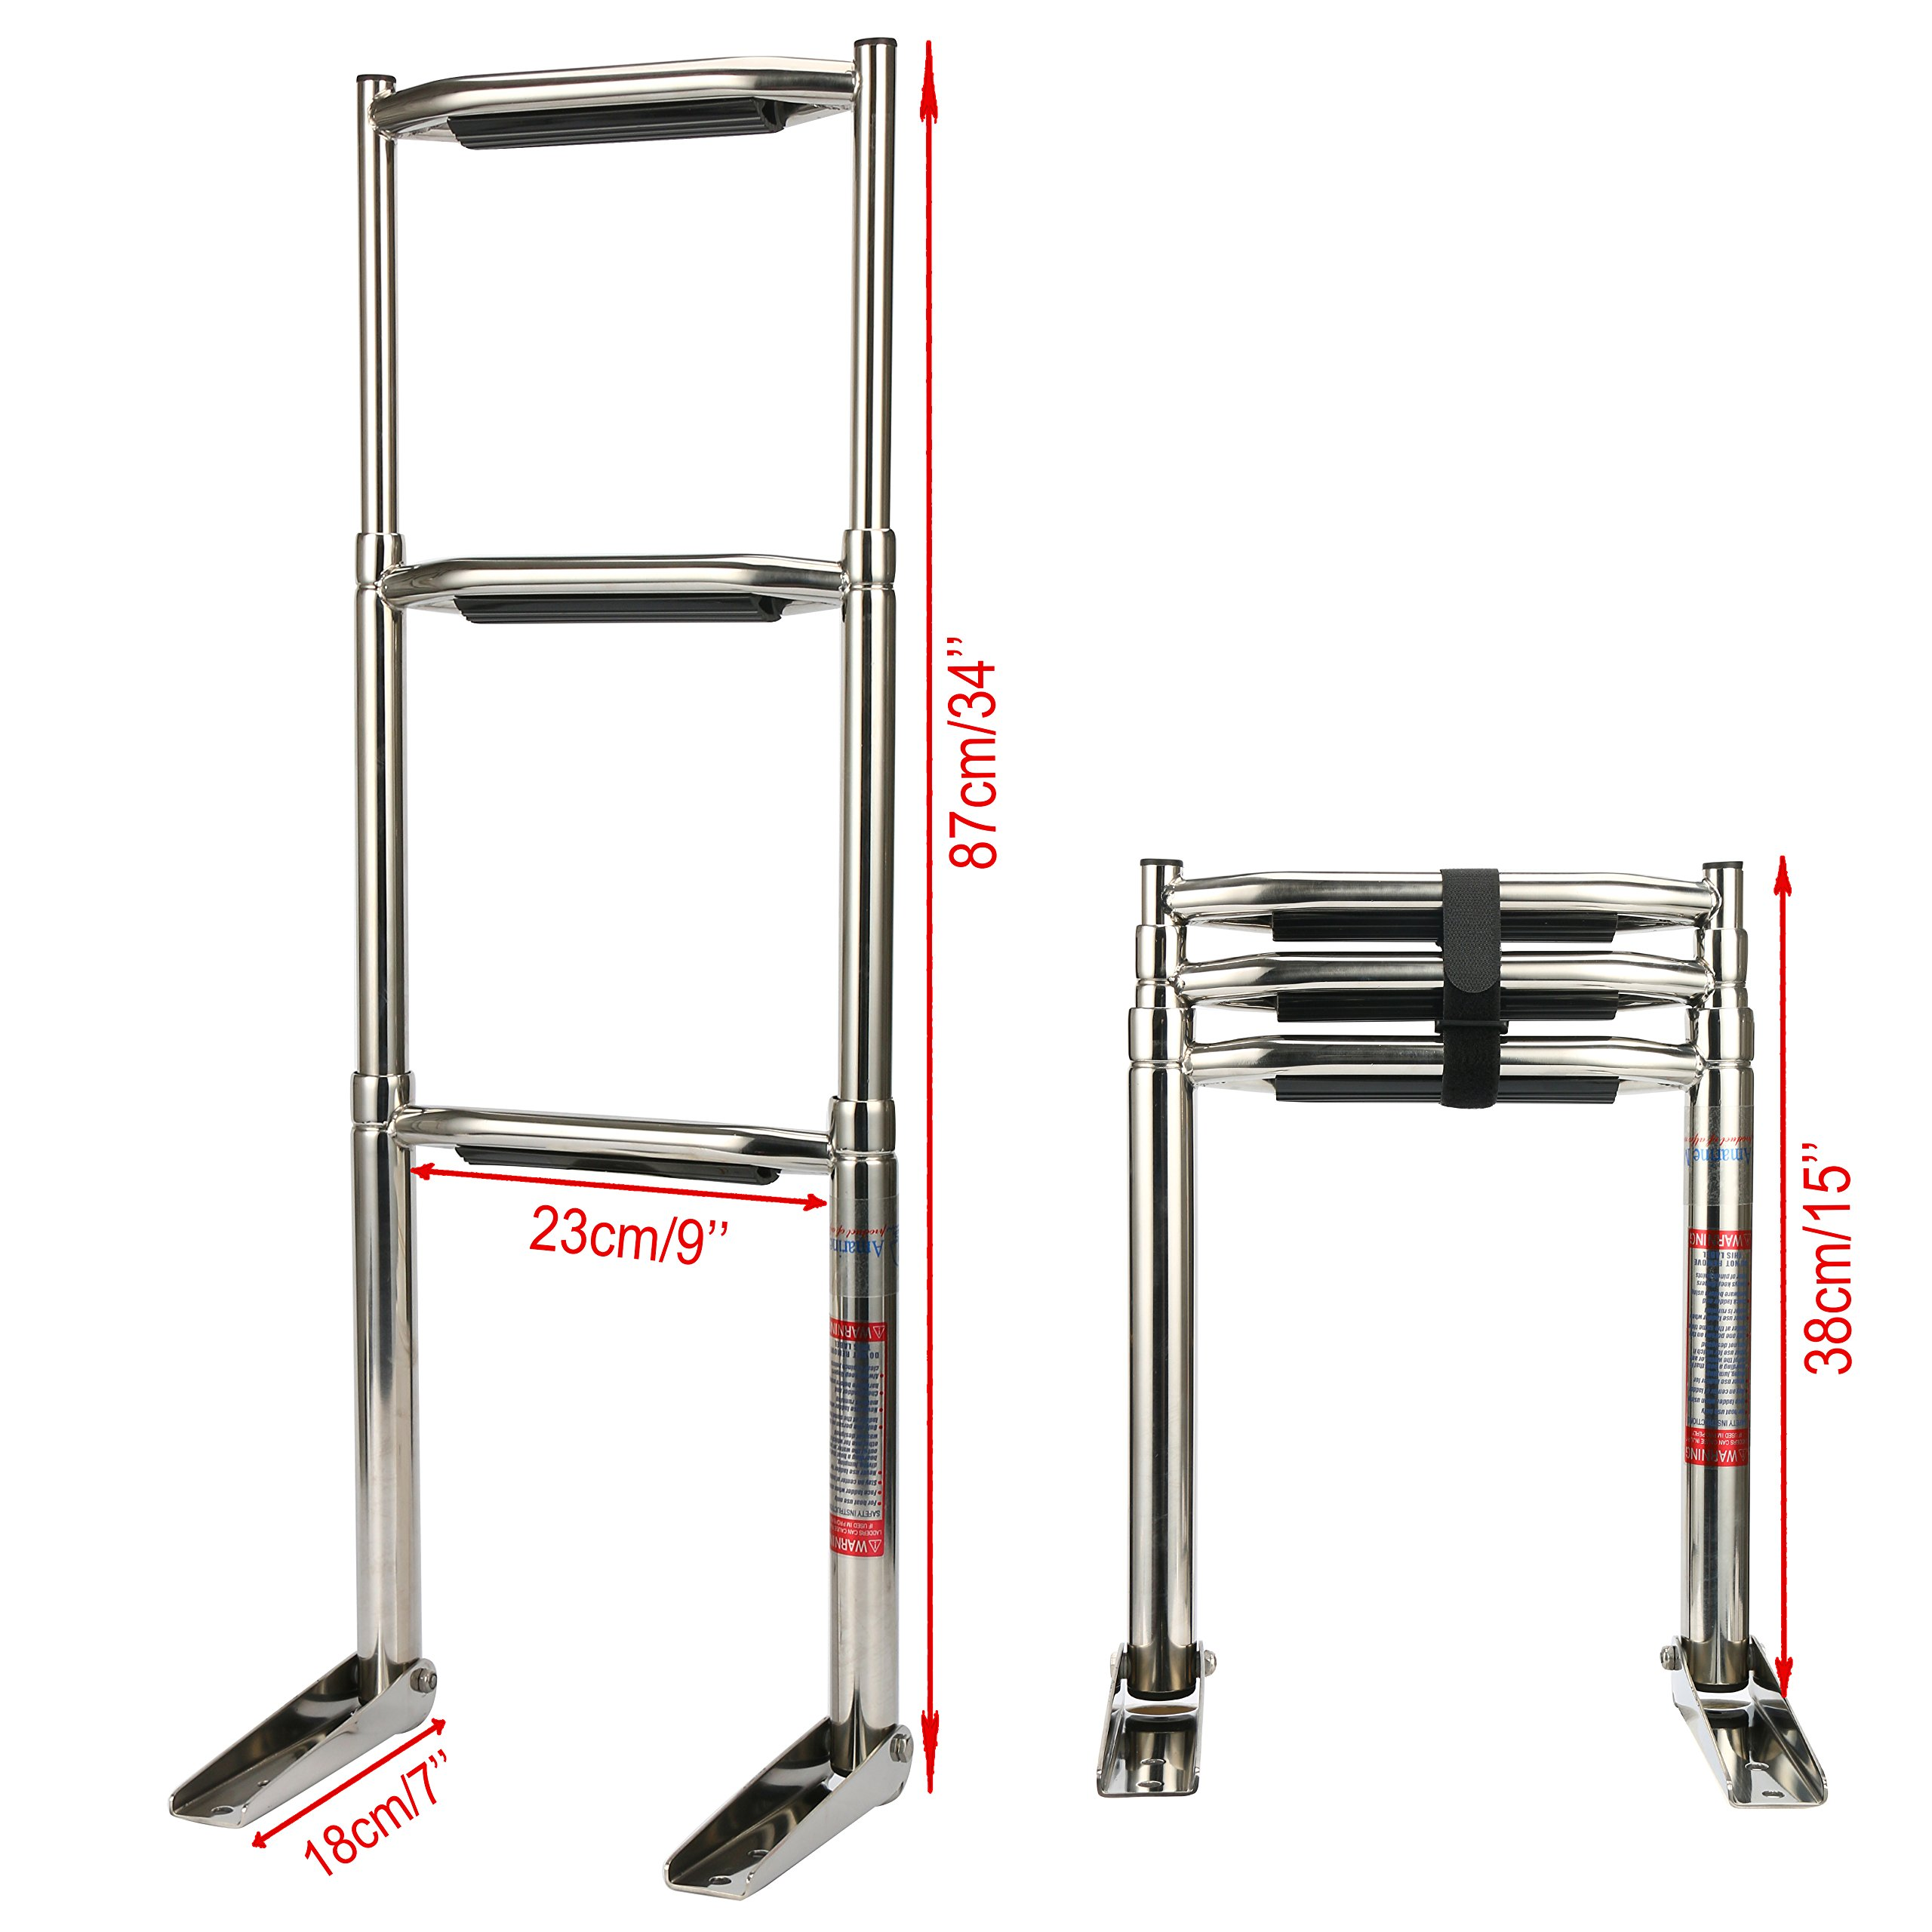 Amarine-made 3 Step Wide Steps Stainless Steel Telescoping Boat Ladder Swim Step